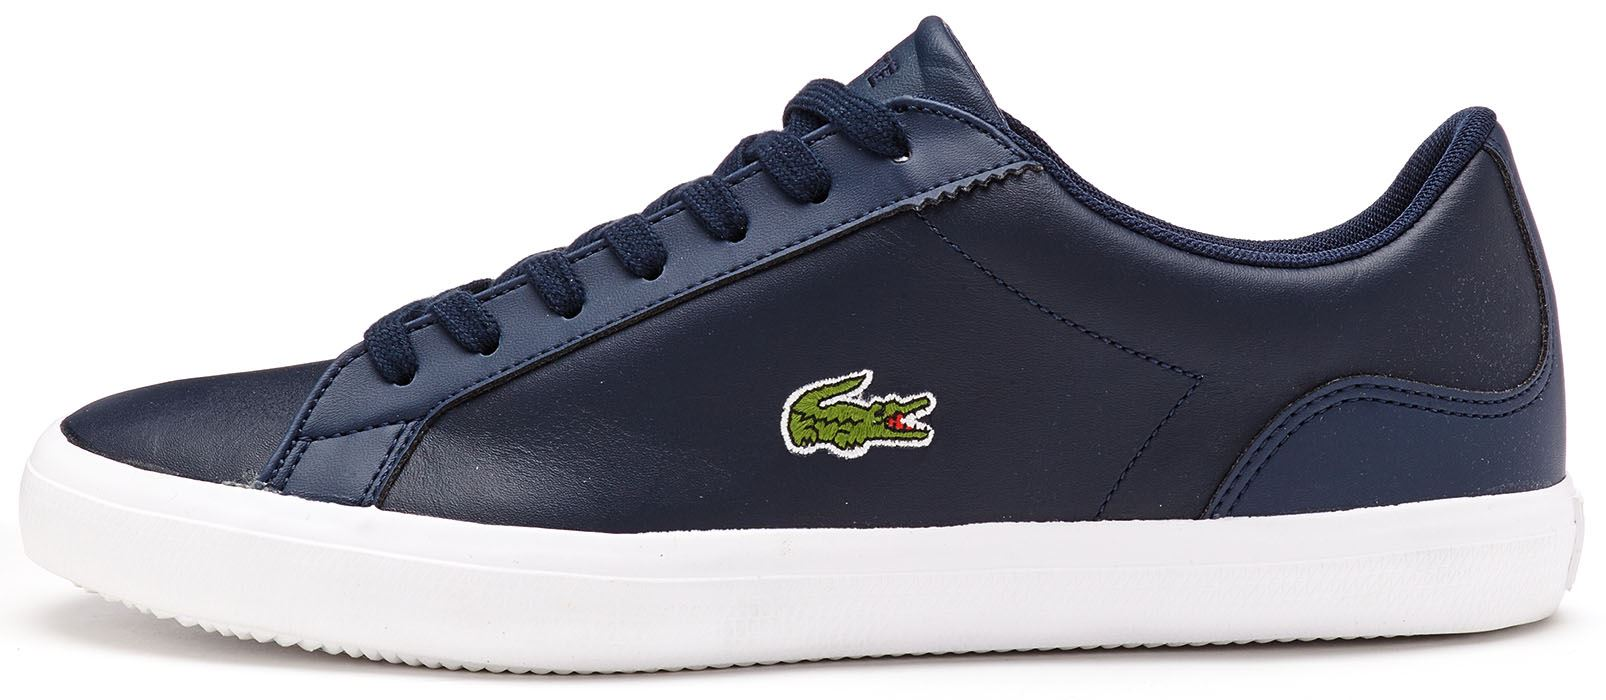 Lacoste-Lerond-BL-1-CAM-Leather-Trainers-in-